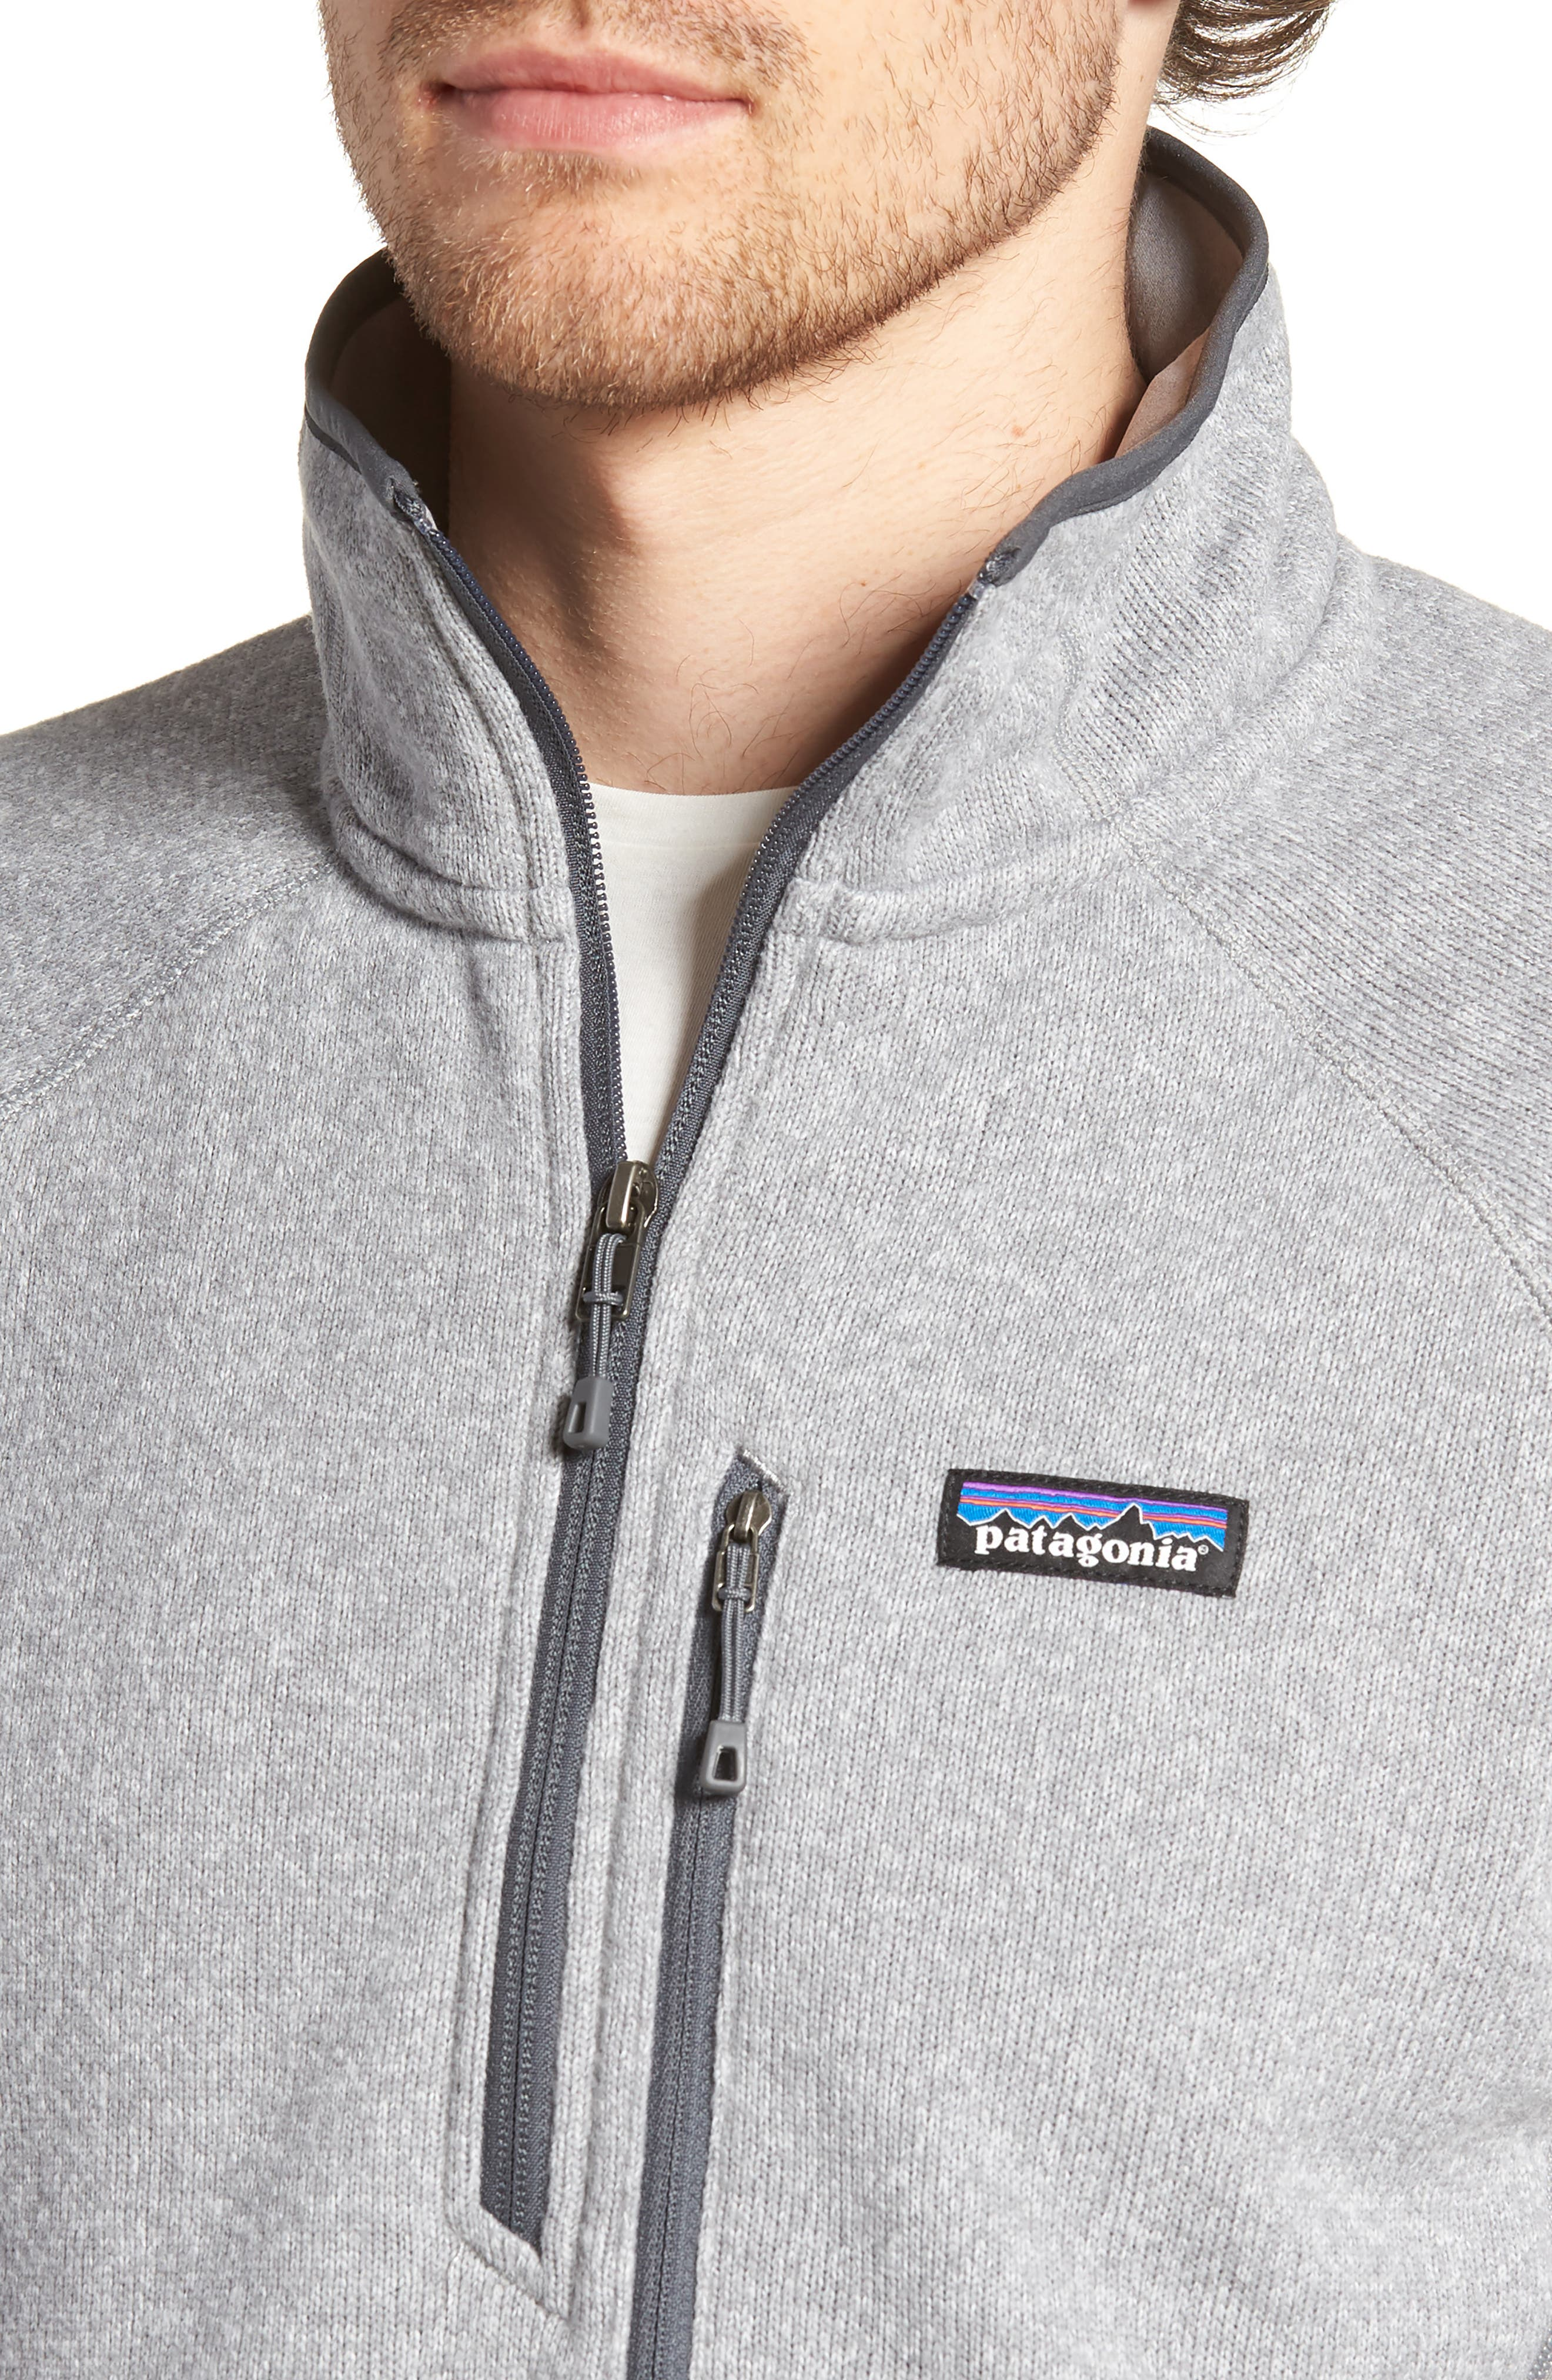 Performance Pullover,                             Alternate thumbnail 4, color,                             Feather Grey